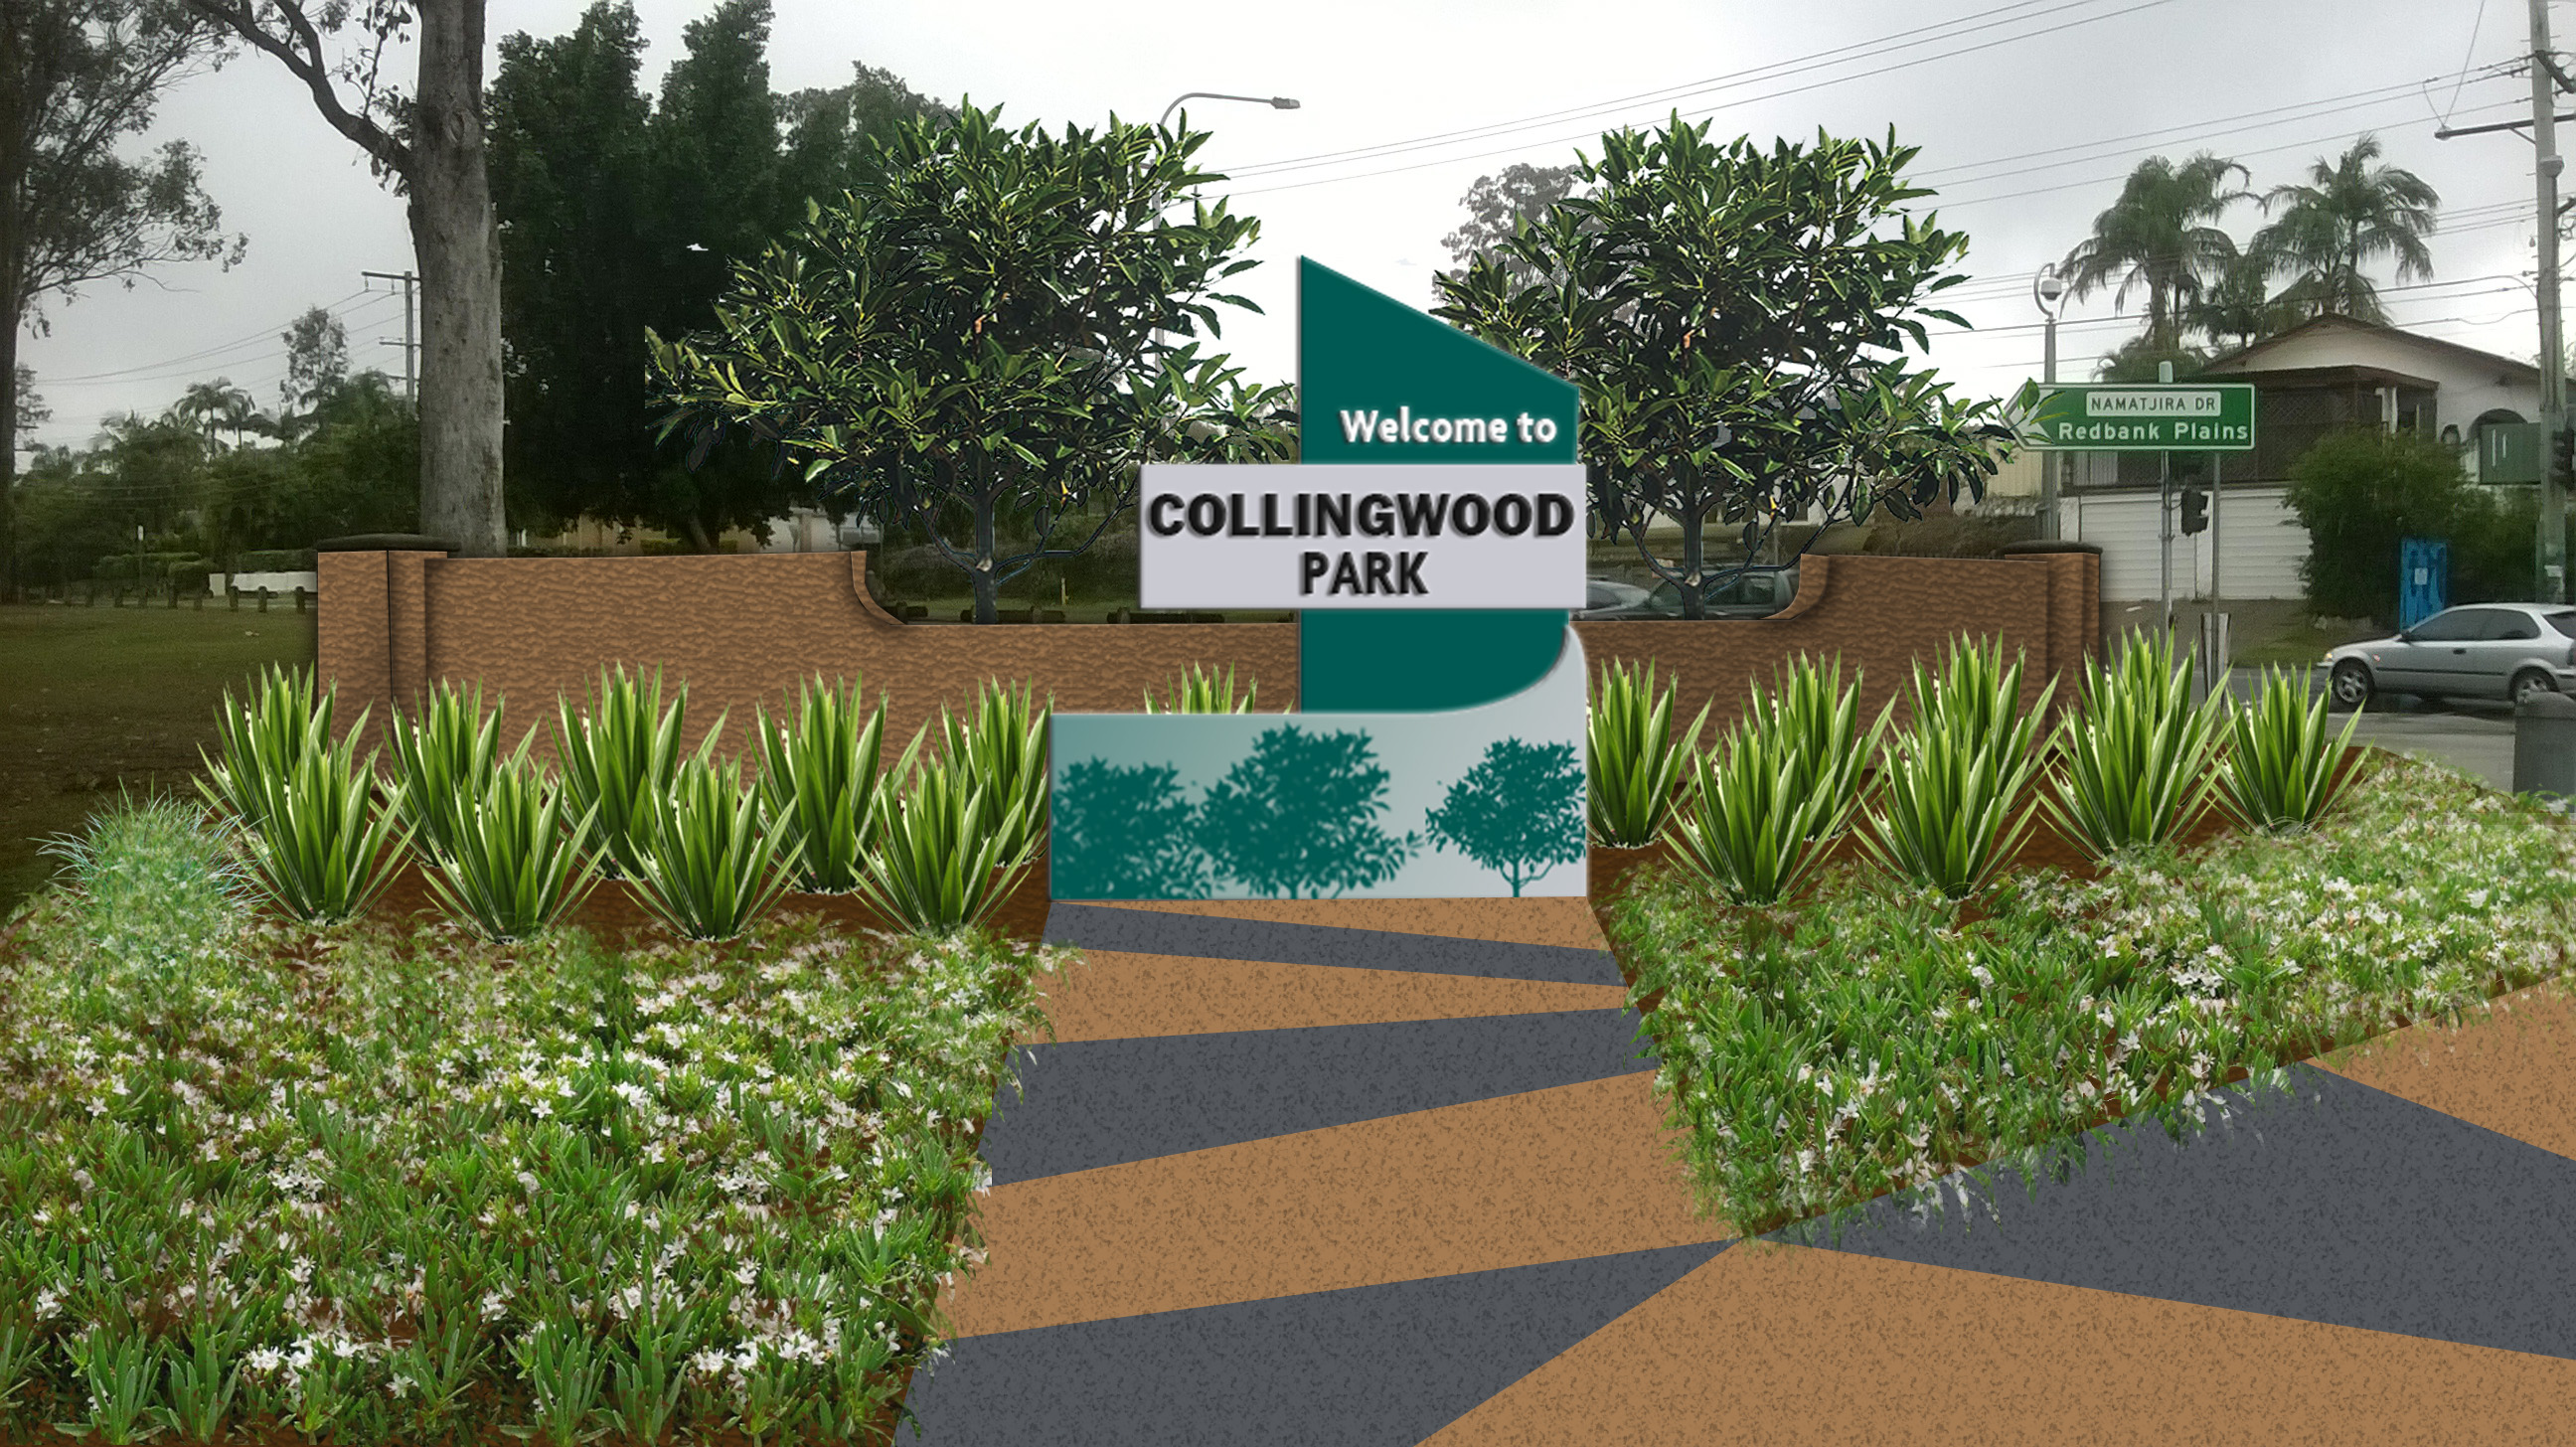 Proposed suburb entry signage for Collingwood Park